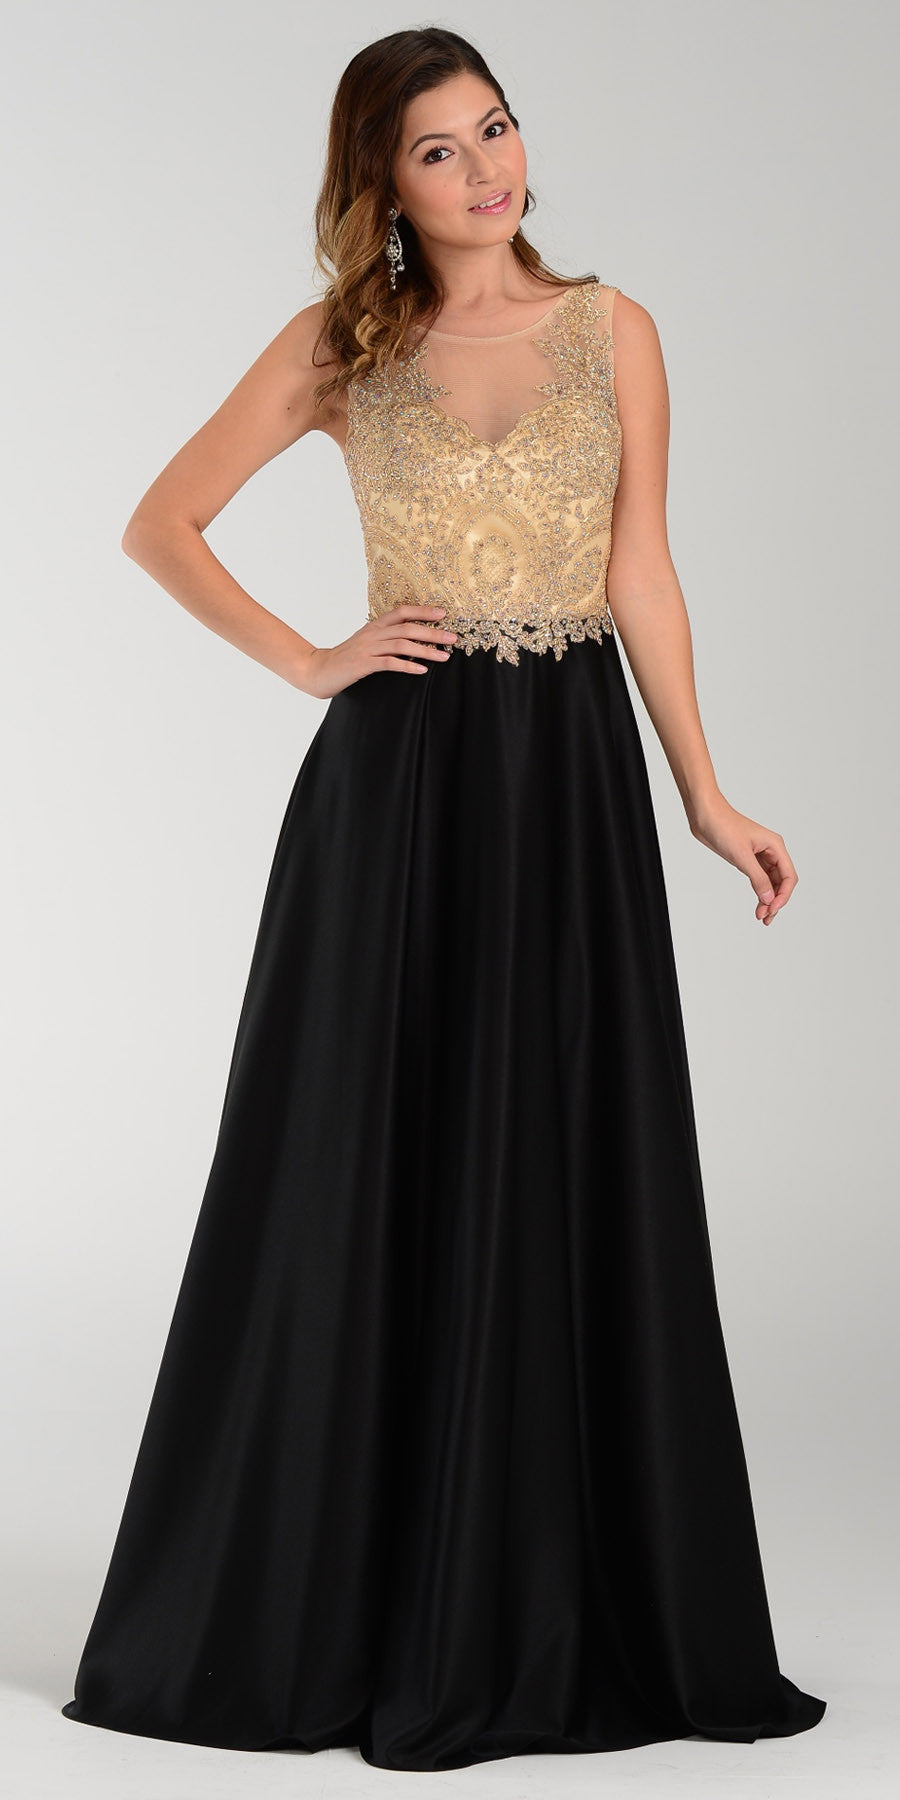 Poly USA 7494 Long Satin A Line Prom Gown Black Lace Applique